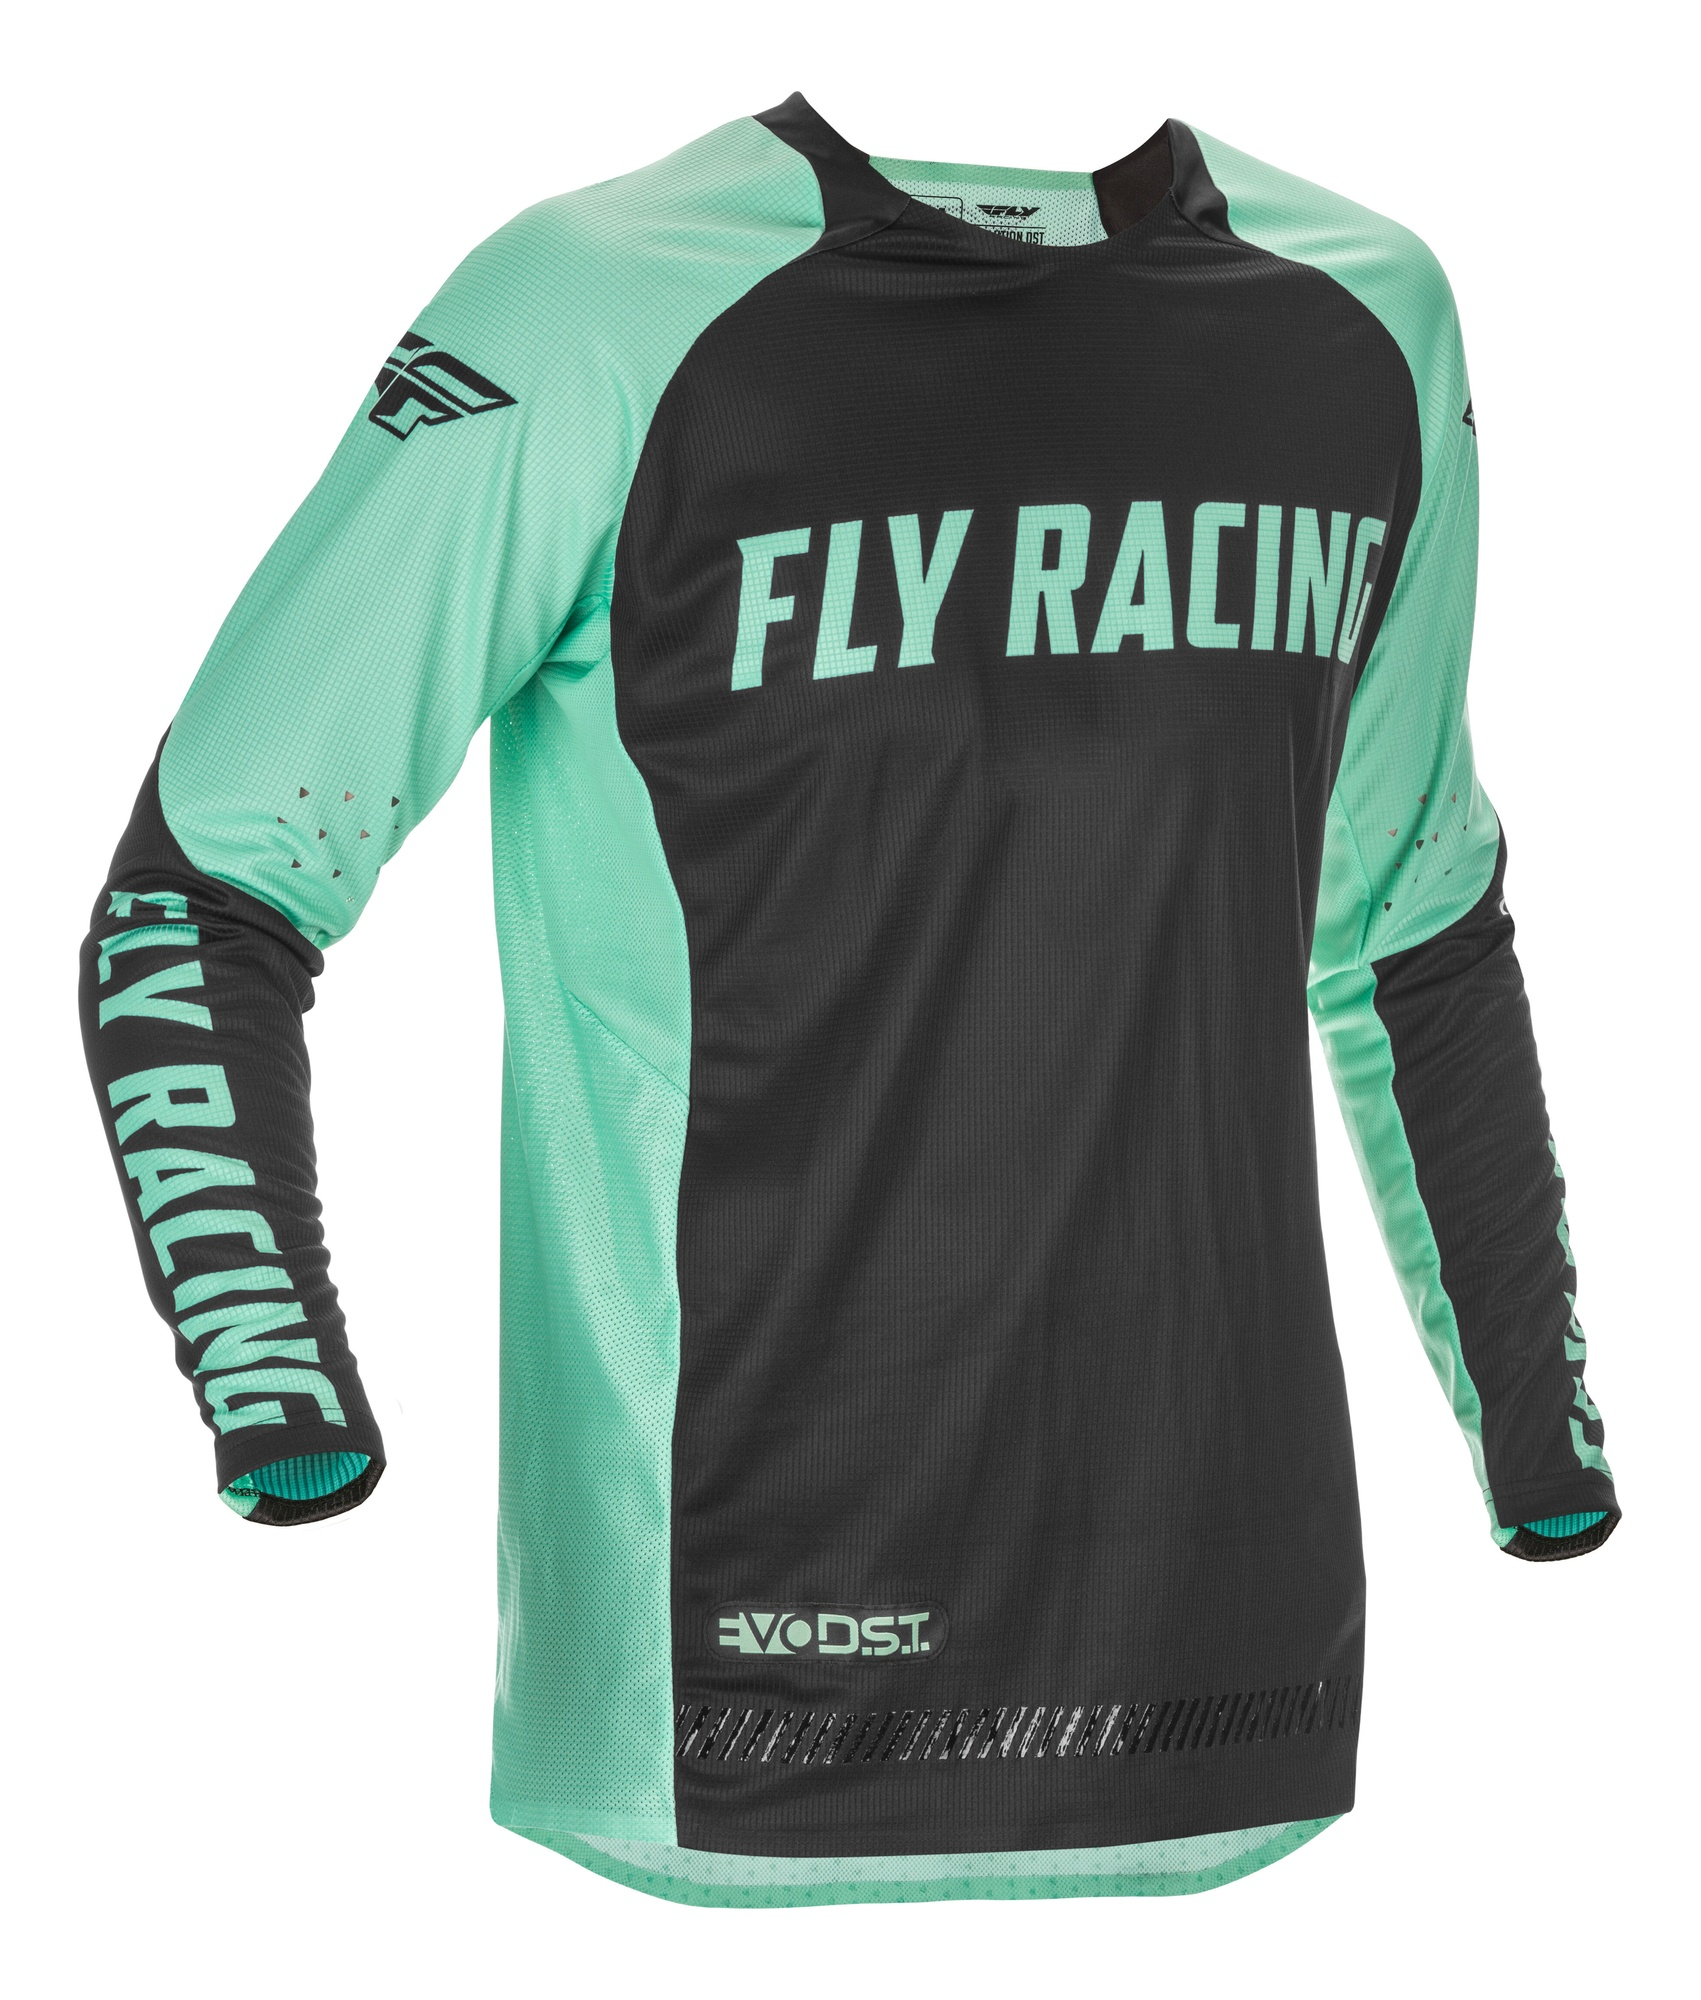 dres EVOLUTION 2021 LE, FLY RACING - USA (mint zelená/černá , vel. XL)